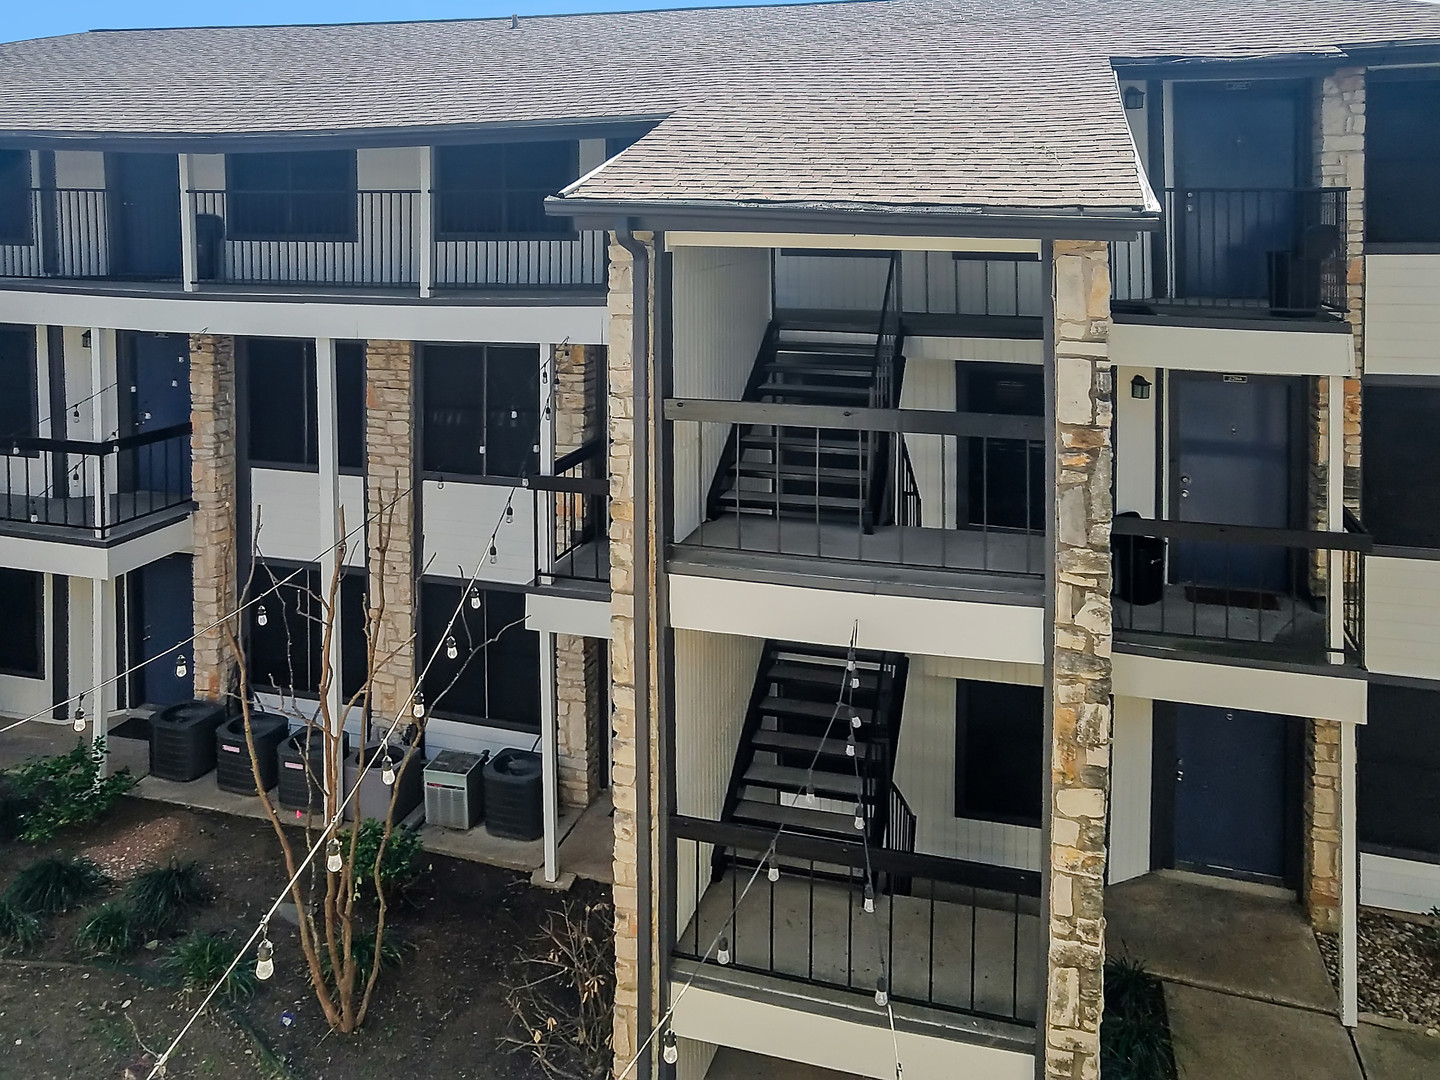 A great view showing this third story multifamily apartment installation.